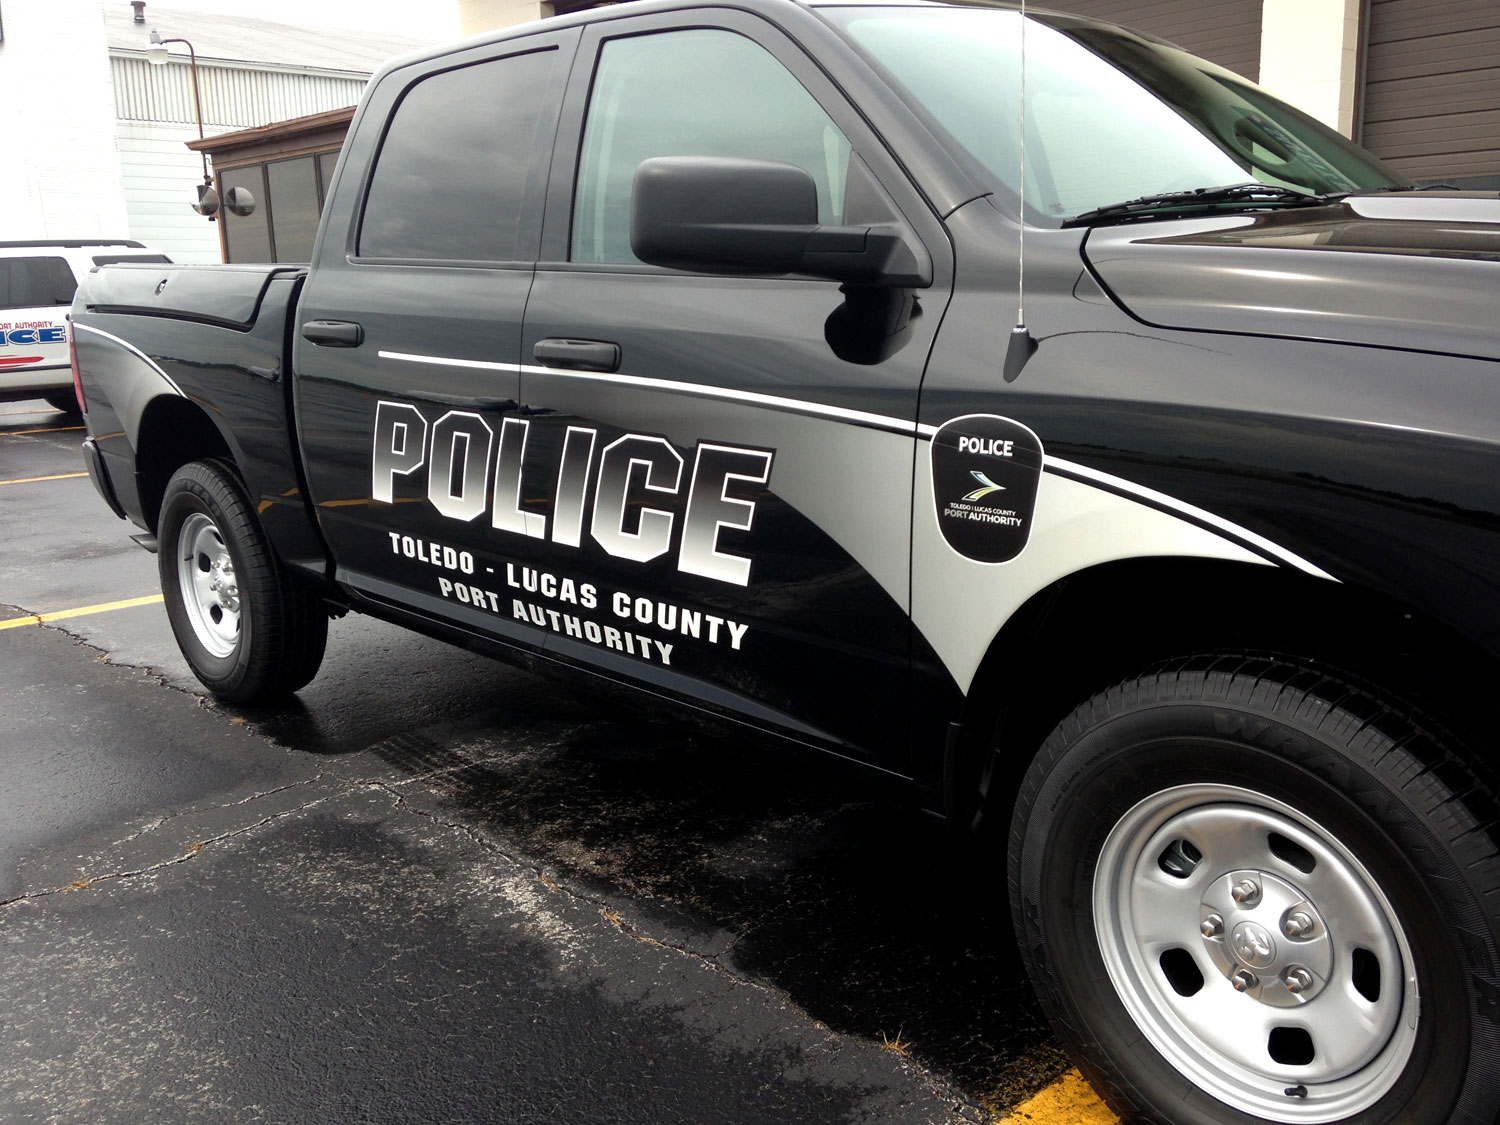 Toledo Lucas County Port Authority Police Vehicle Graphics